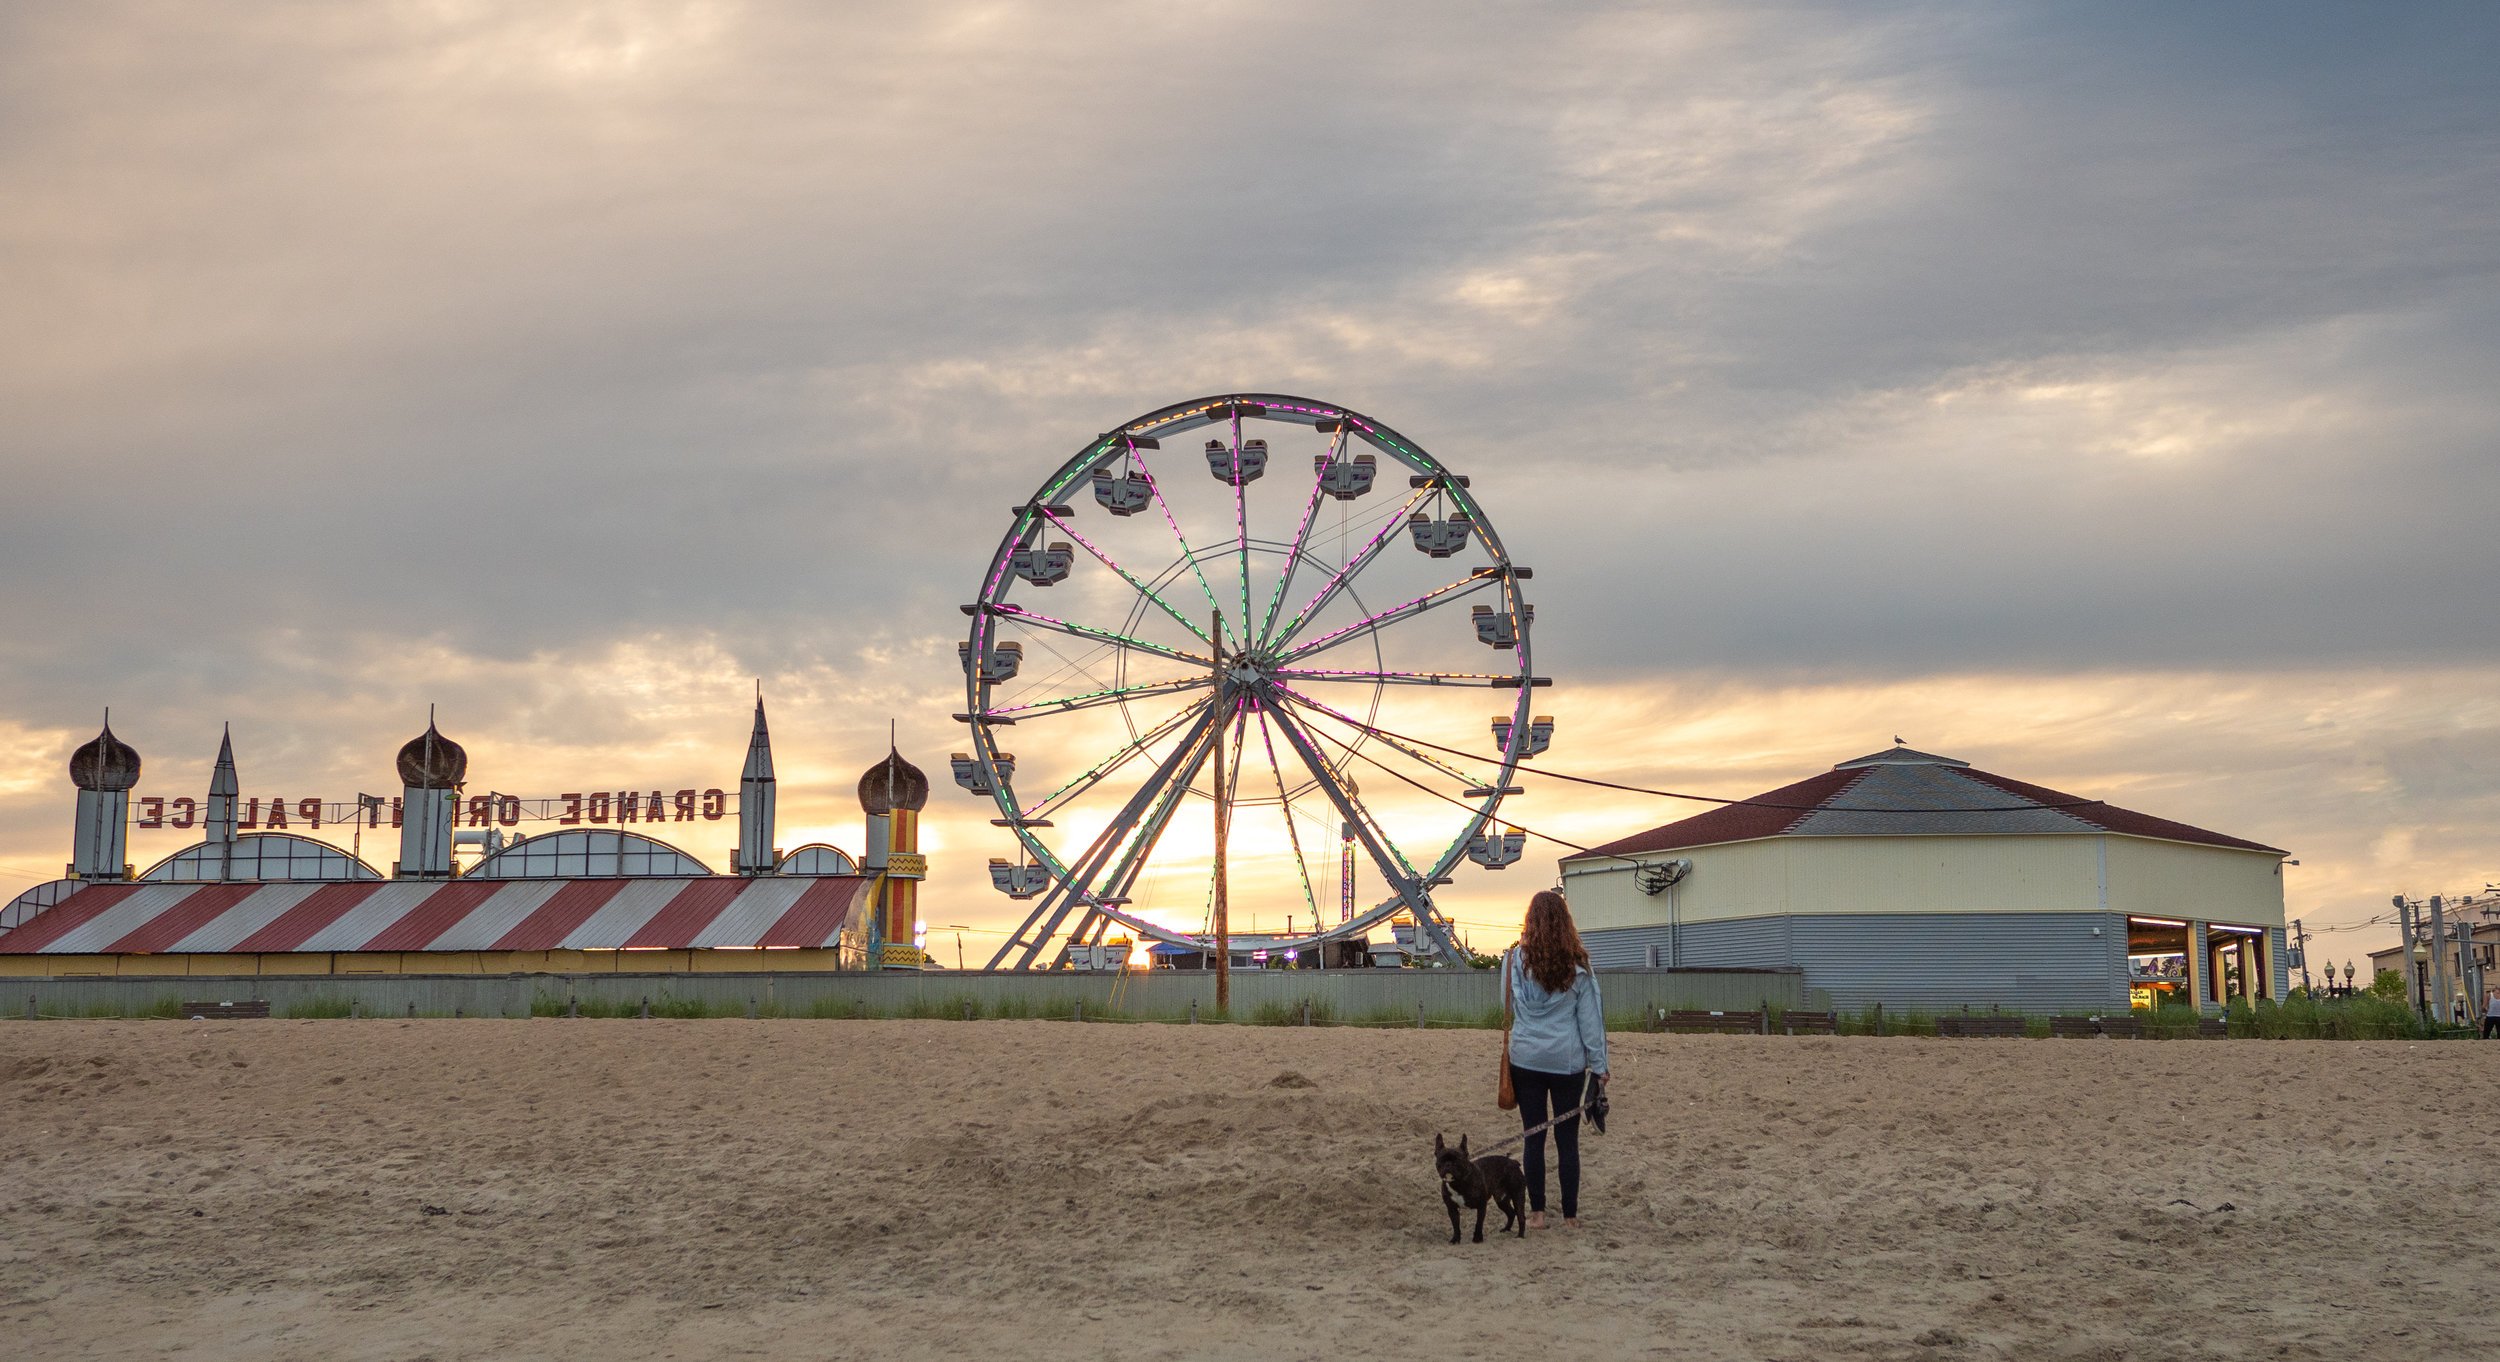 Old Orchard Beach | ME - Myrtle Beach of the North East?